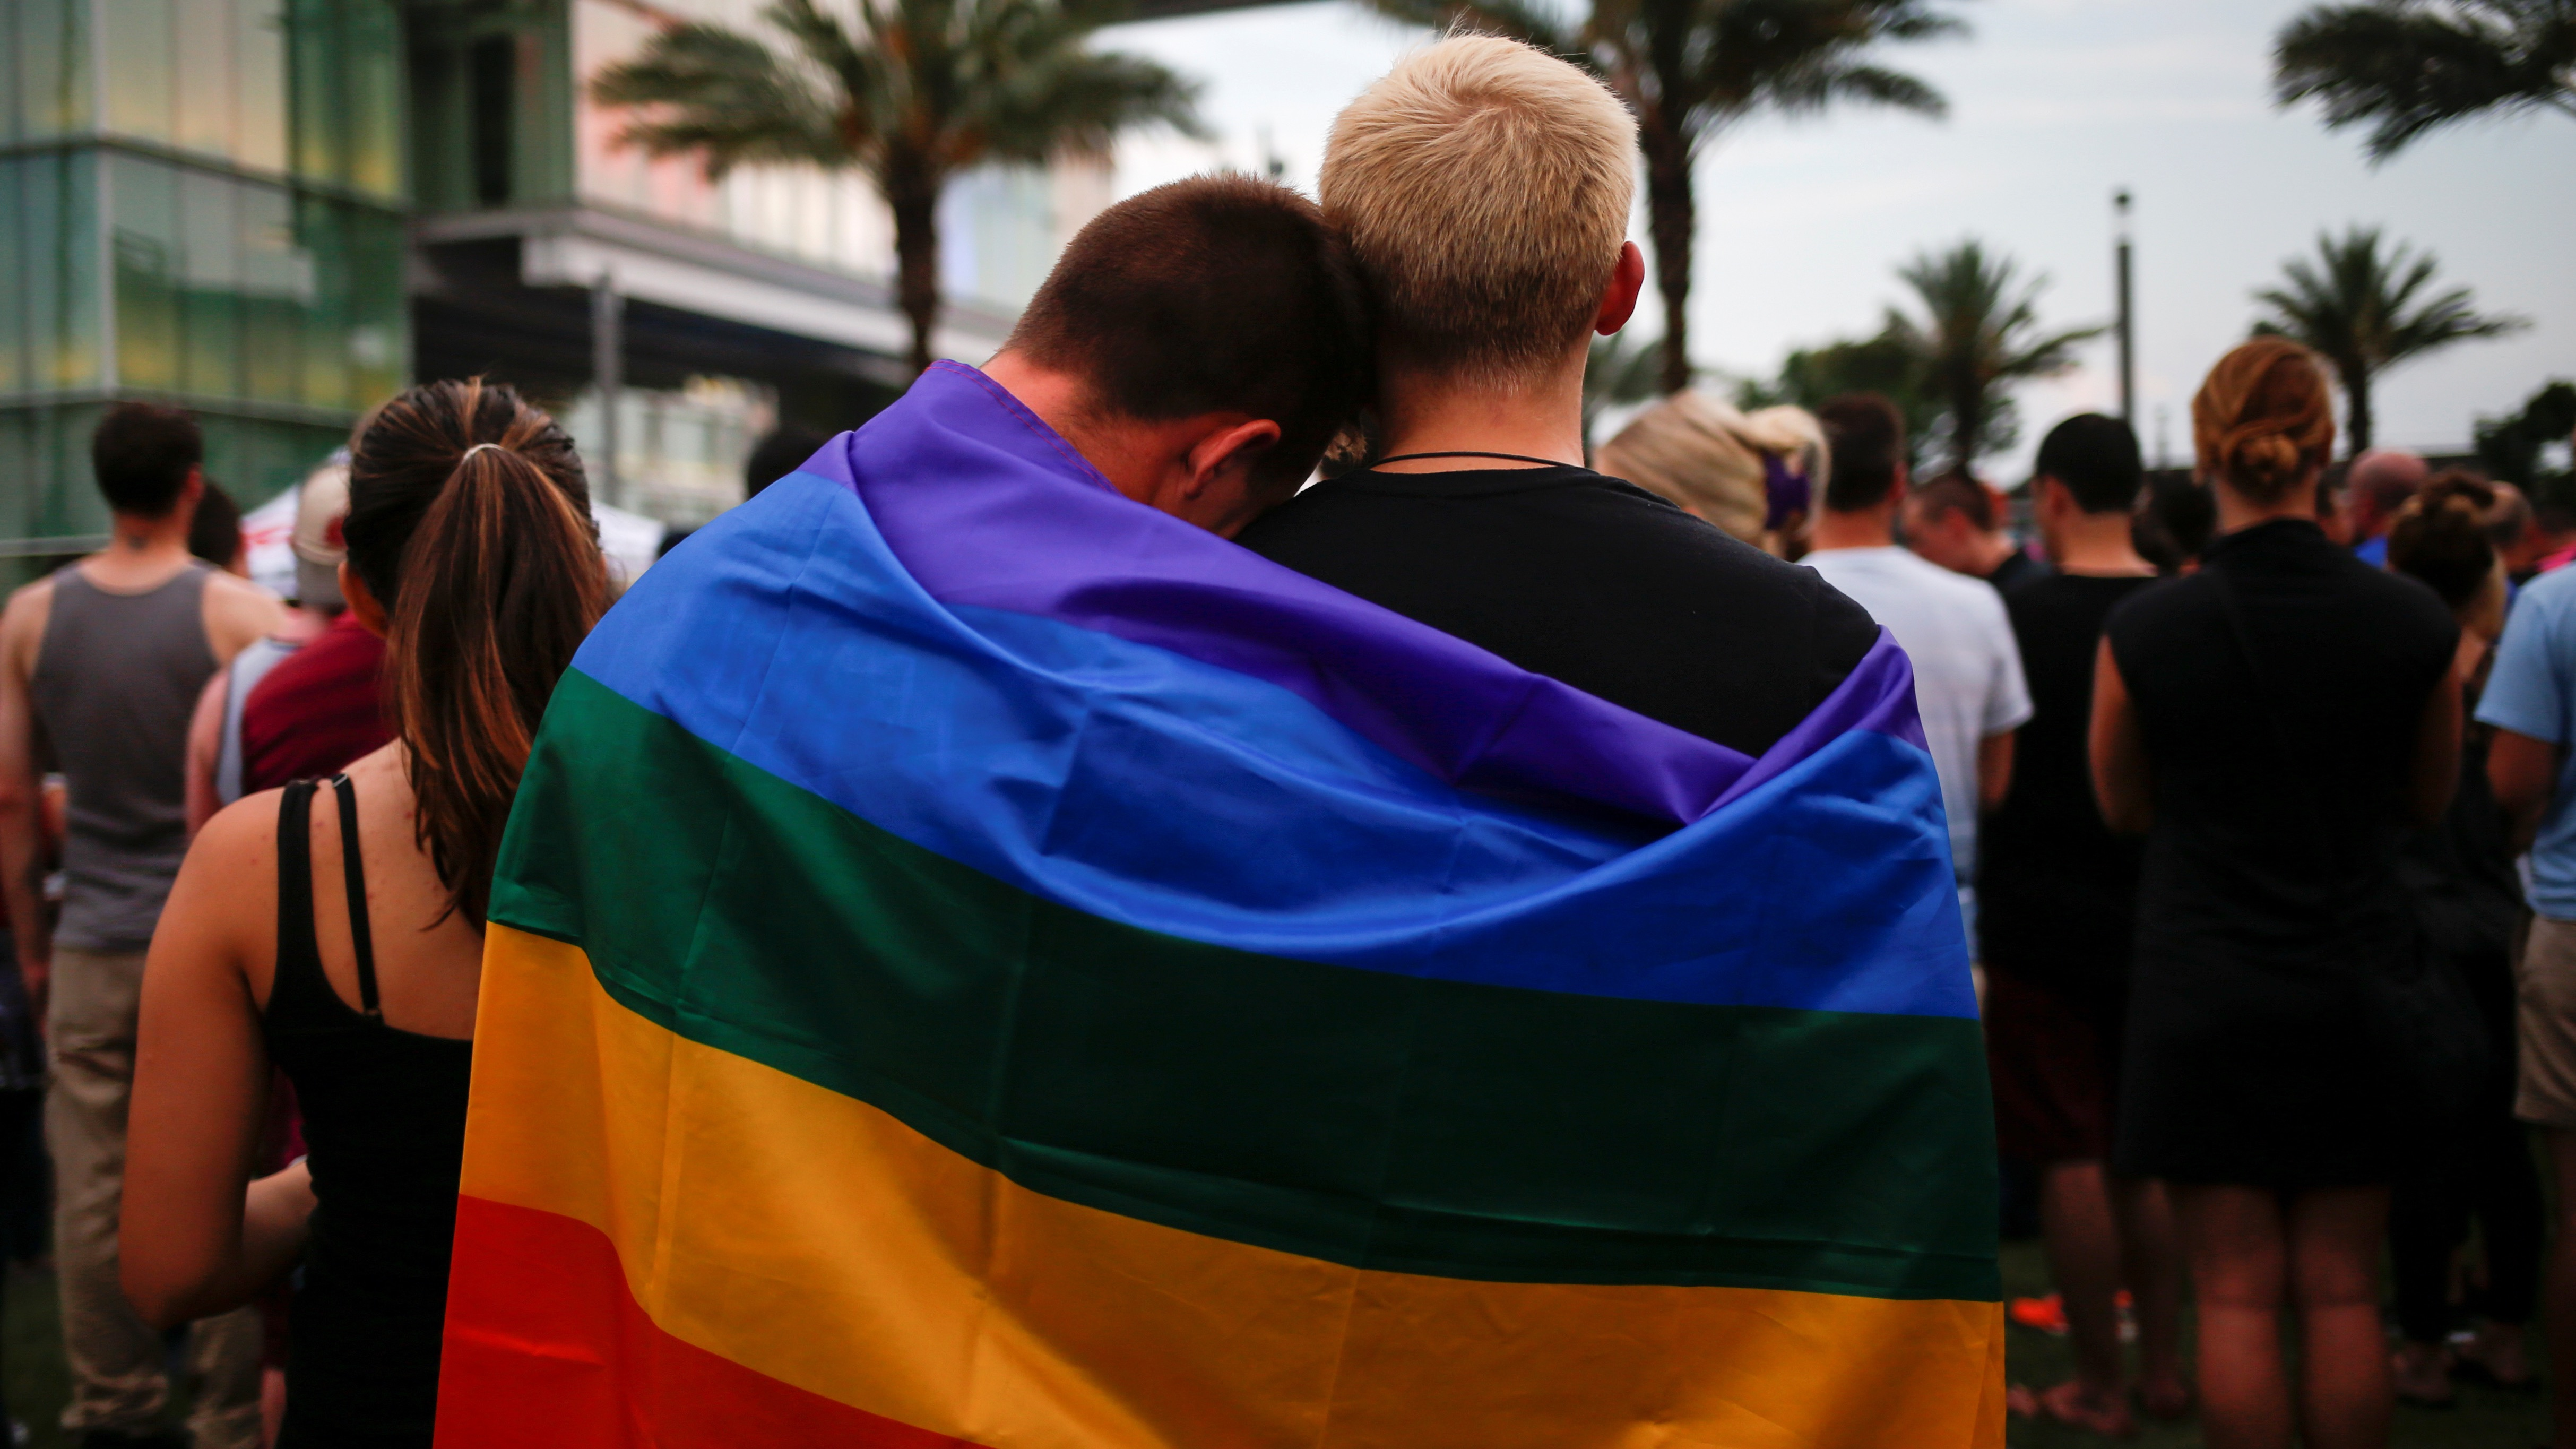 Men, draped in a rainbow flag, embrace ahead of a candle light vigil in memory of victims one day after a mass shooting at the Pulse gay night club in Orlando, Florida, U.S., June 13, 2016.  REUTERS/Adrees Latif - RTX2G2TO